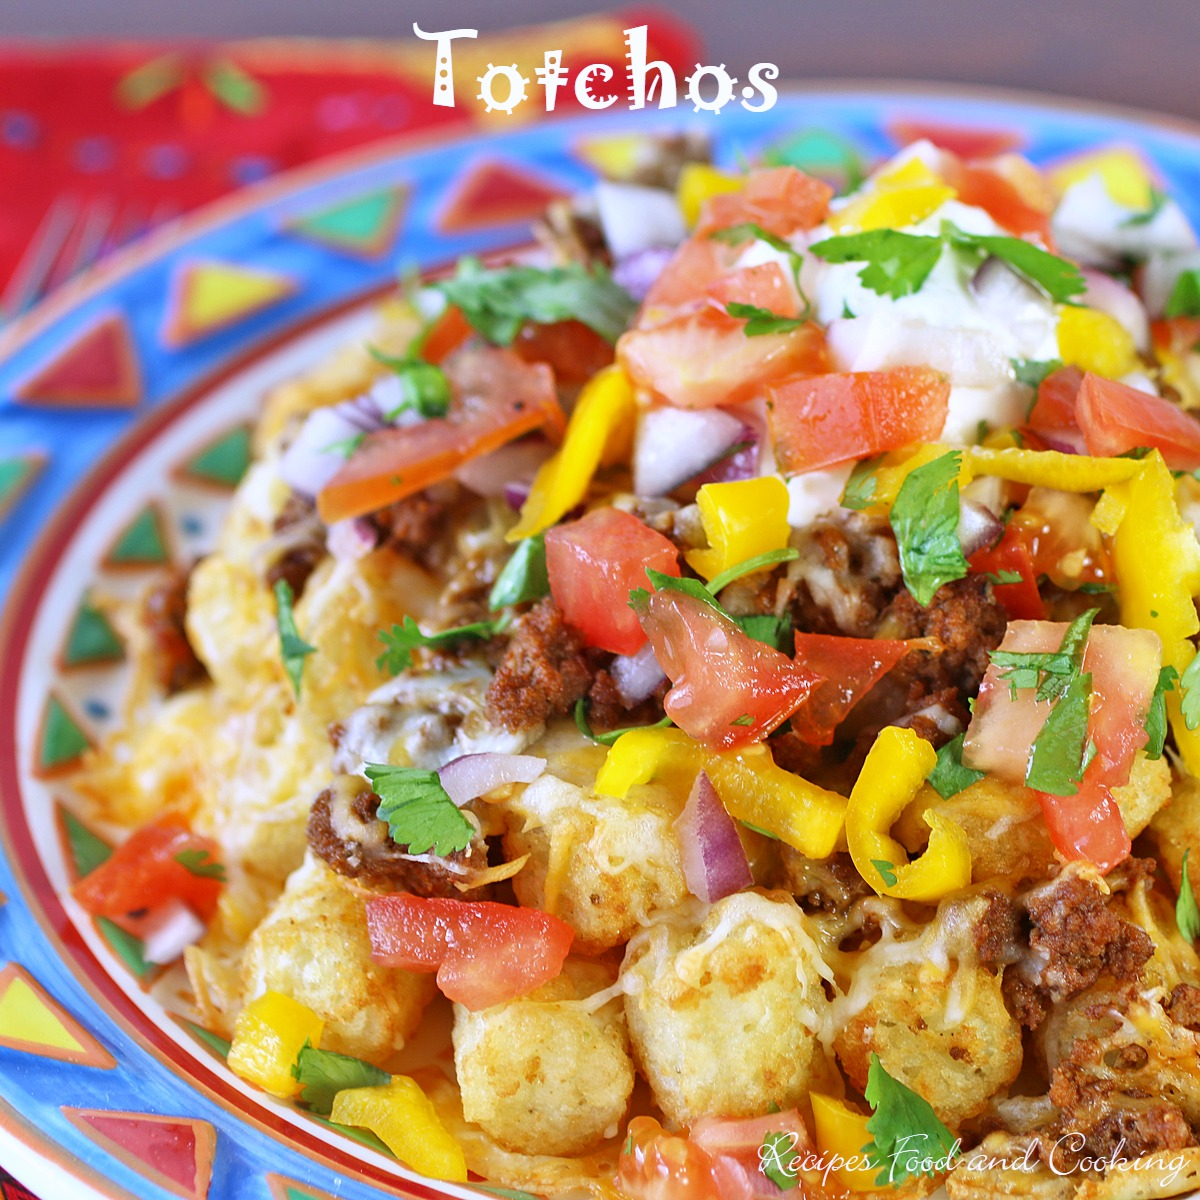 Totchos recipes food and cooking for What can you cook with ground beef